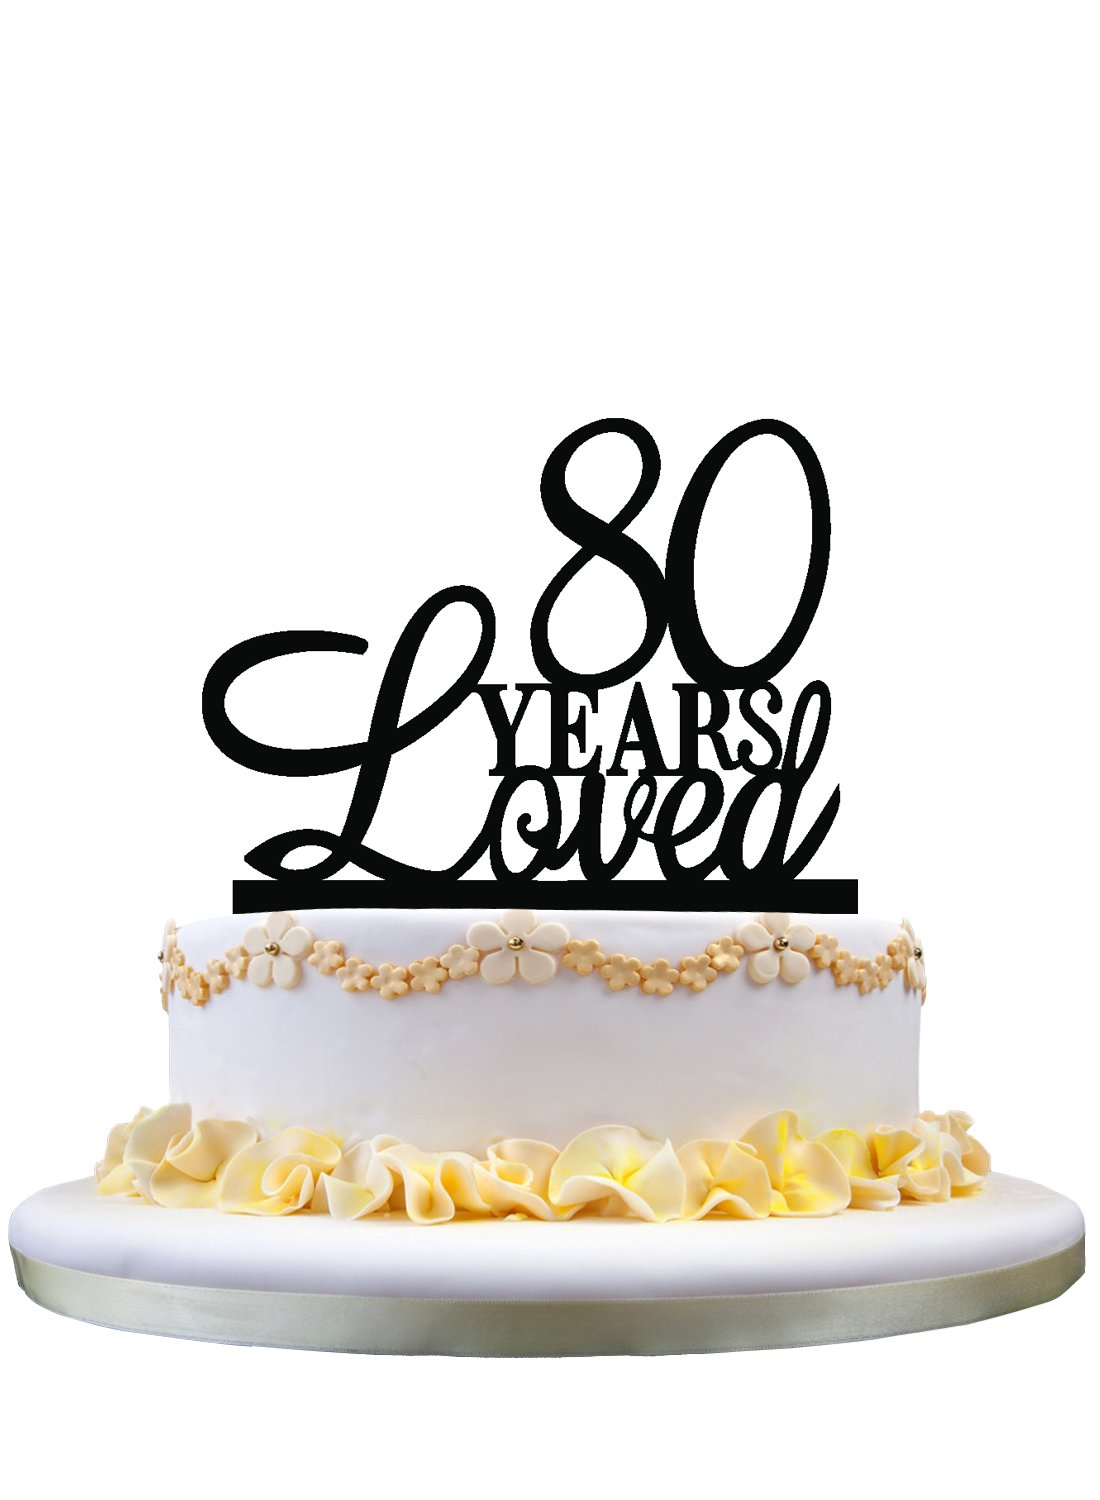 80 Years Loved Cake Topper, Classy 80th Birthday Cake Topper, 80th Anniversary Cake Topper